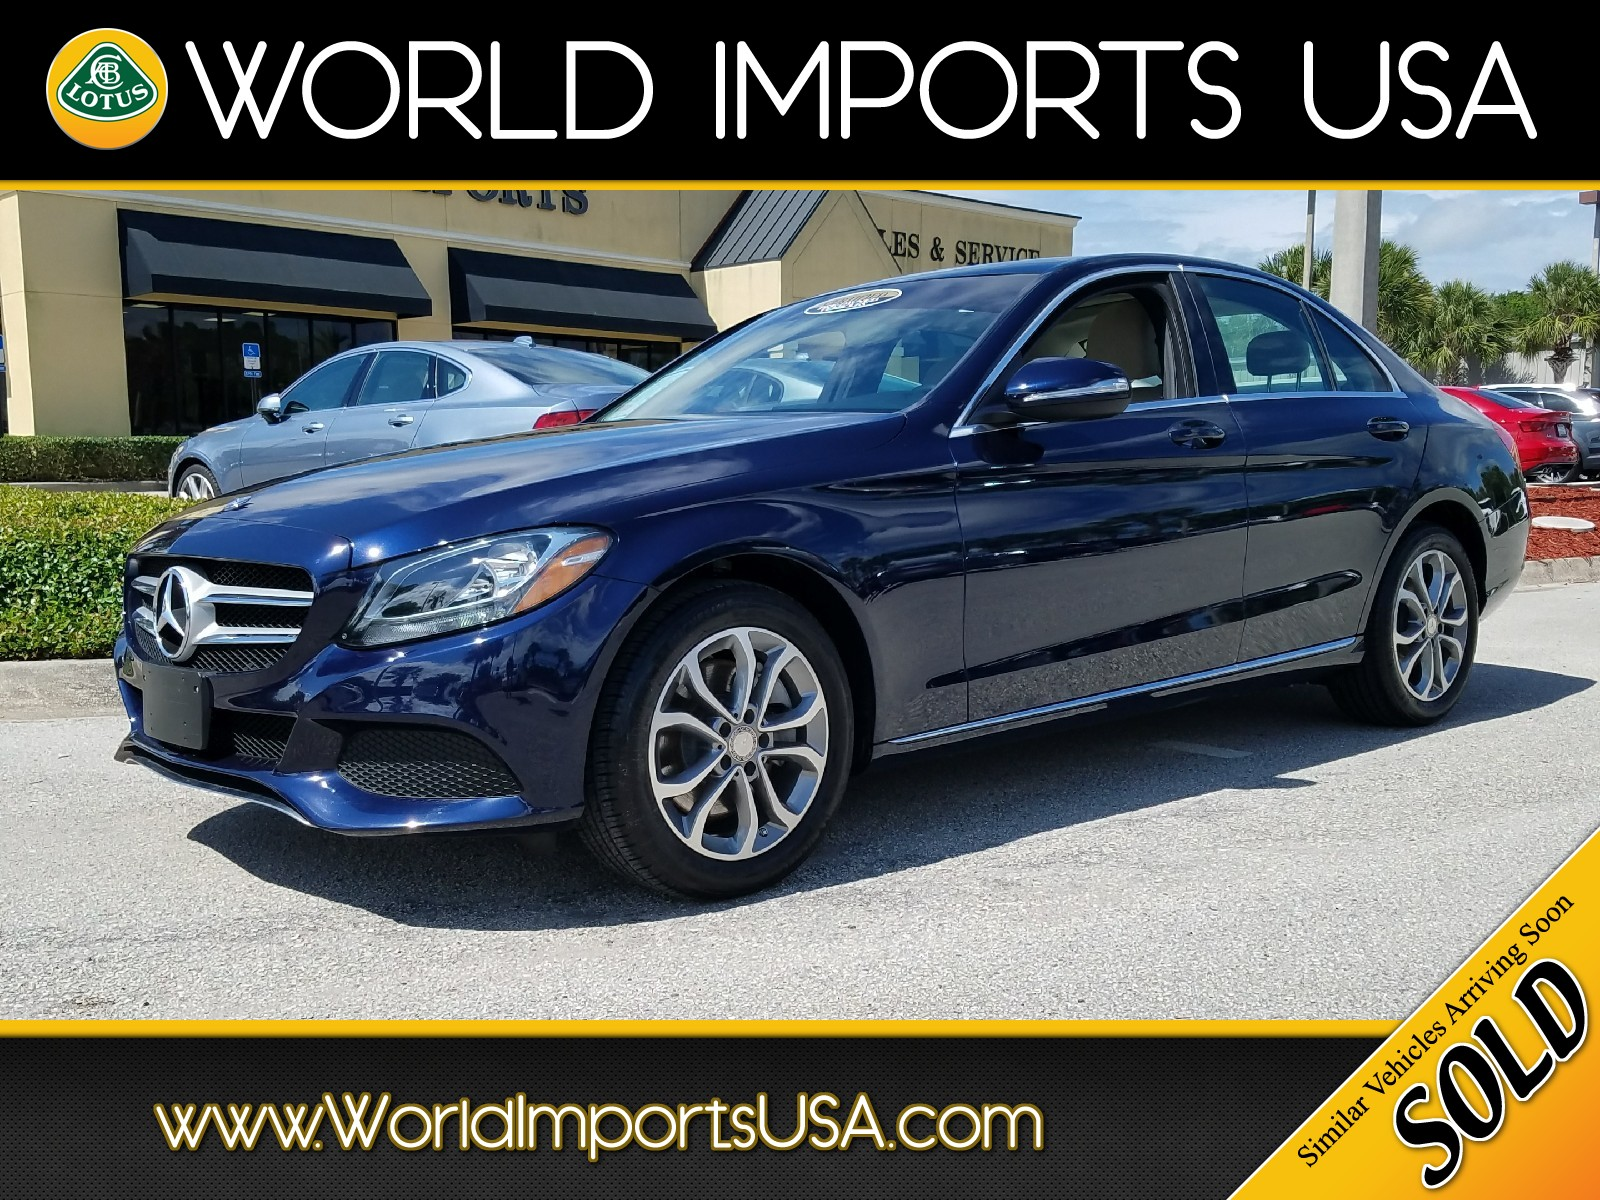 pin amg arab mercedes for united c benz on emirates sale in